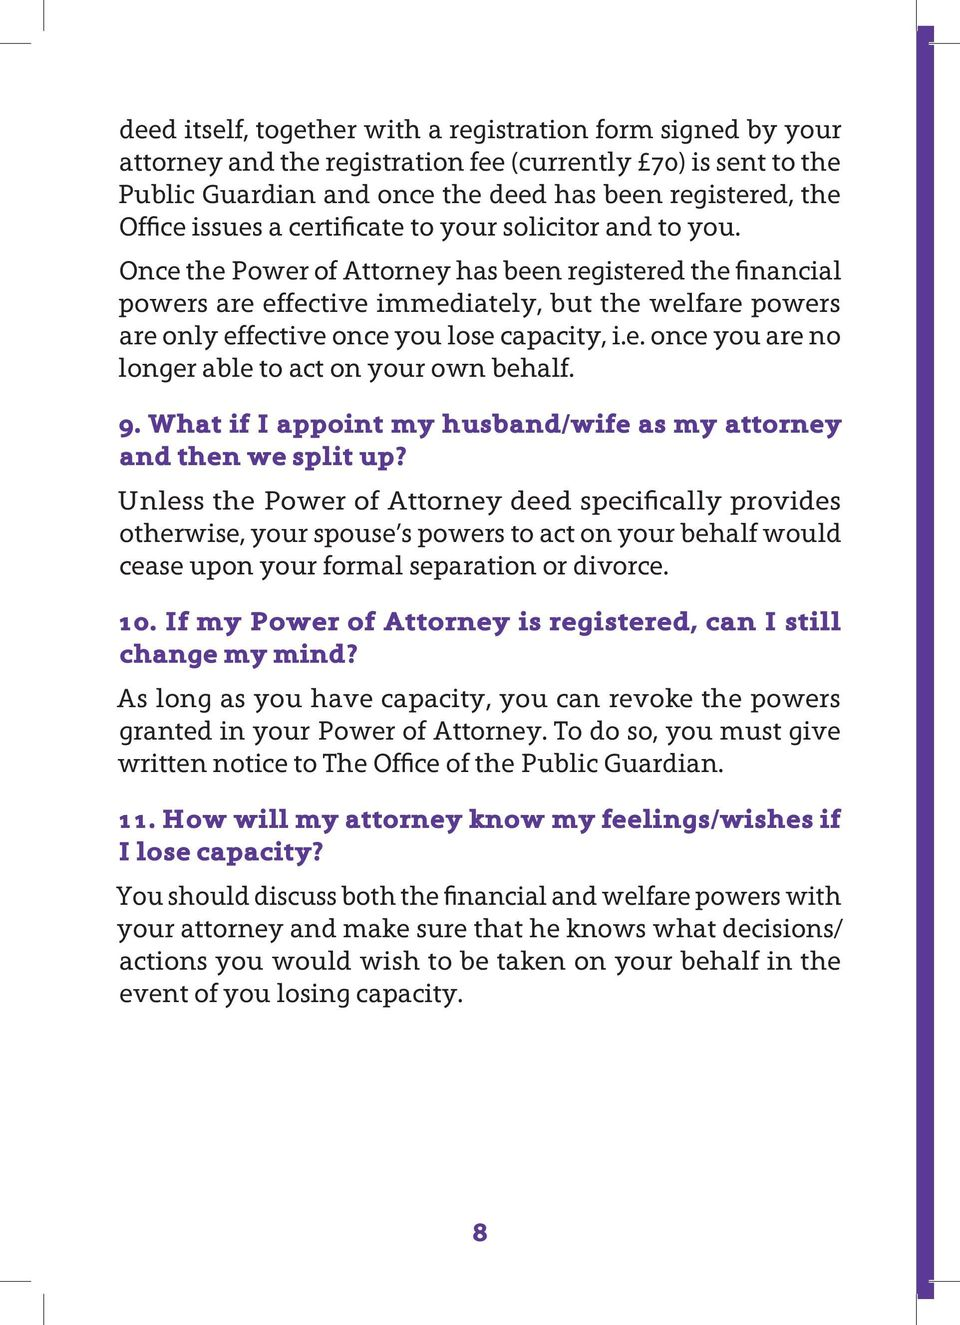 Once the Power of Attorney has been registered the financial powers are effective immediately, but the welfare powers are only effective once you lose capacity, i.e. once you are no longer able to act on your own behalf.